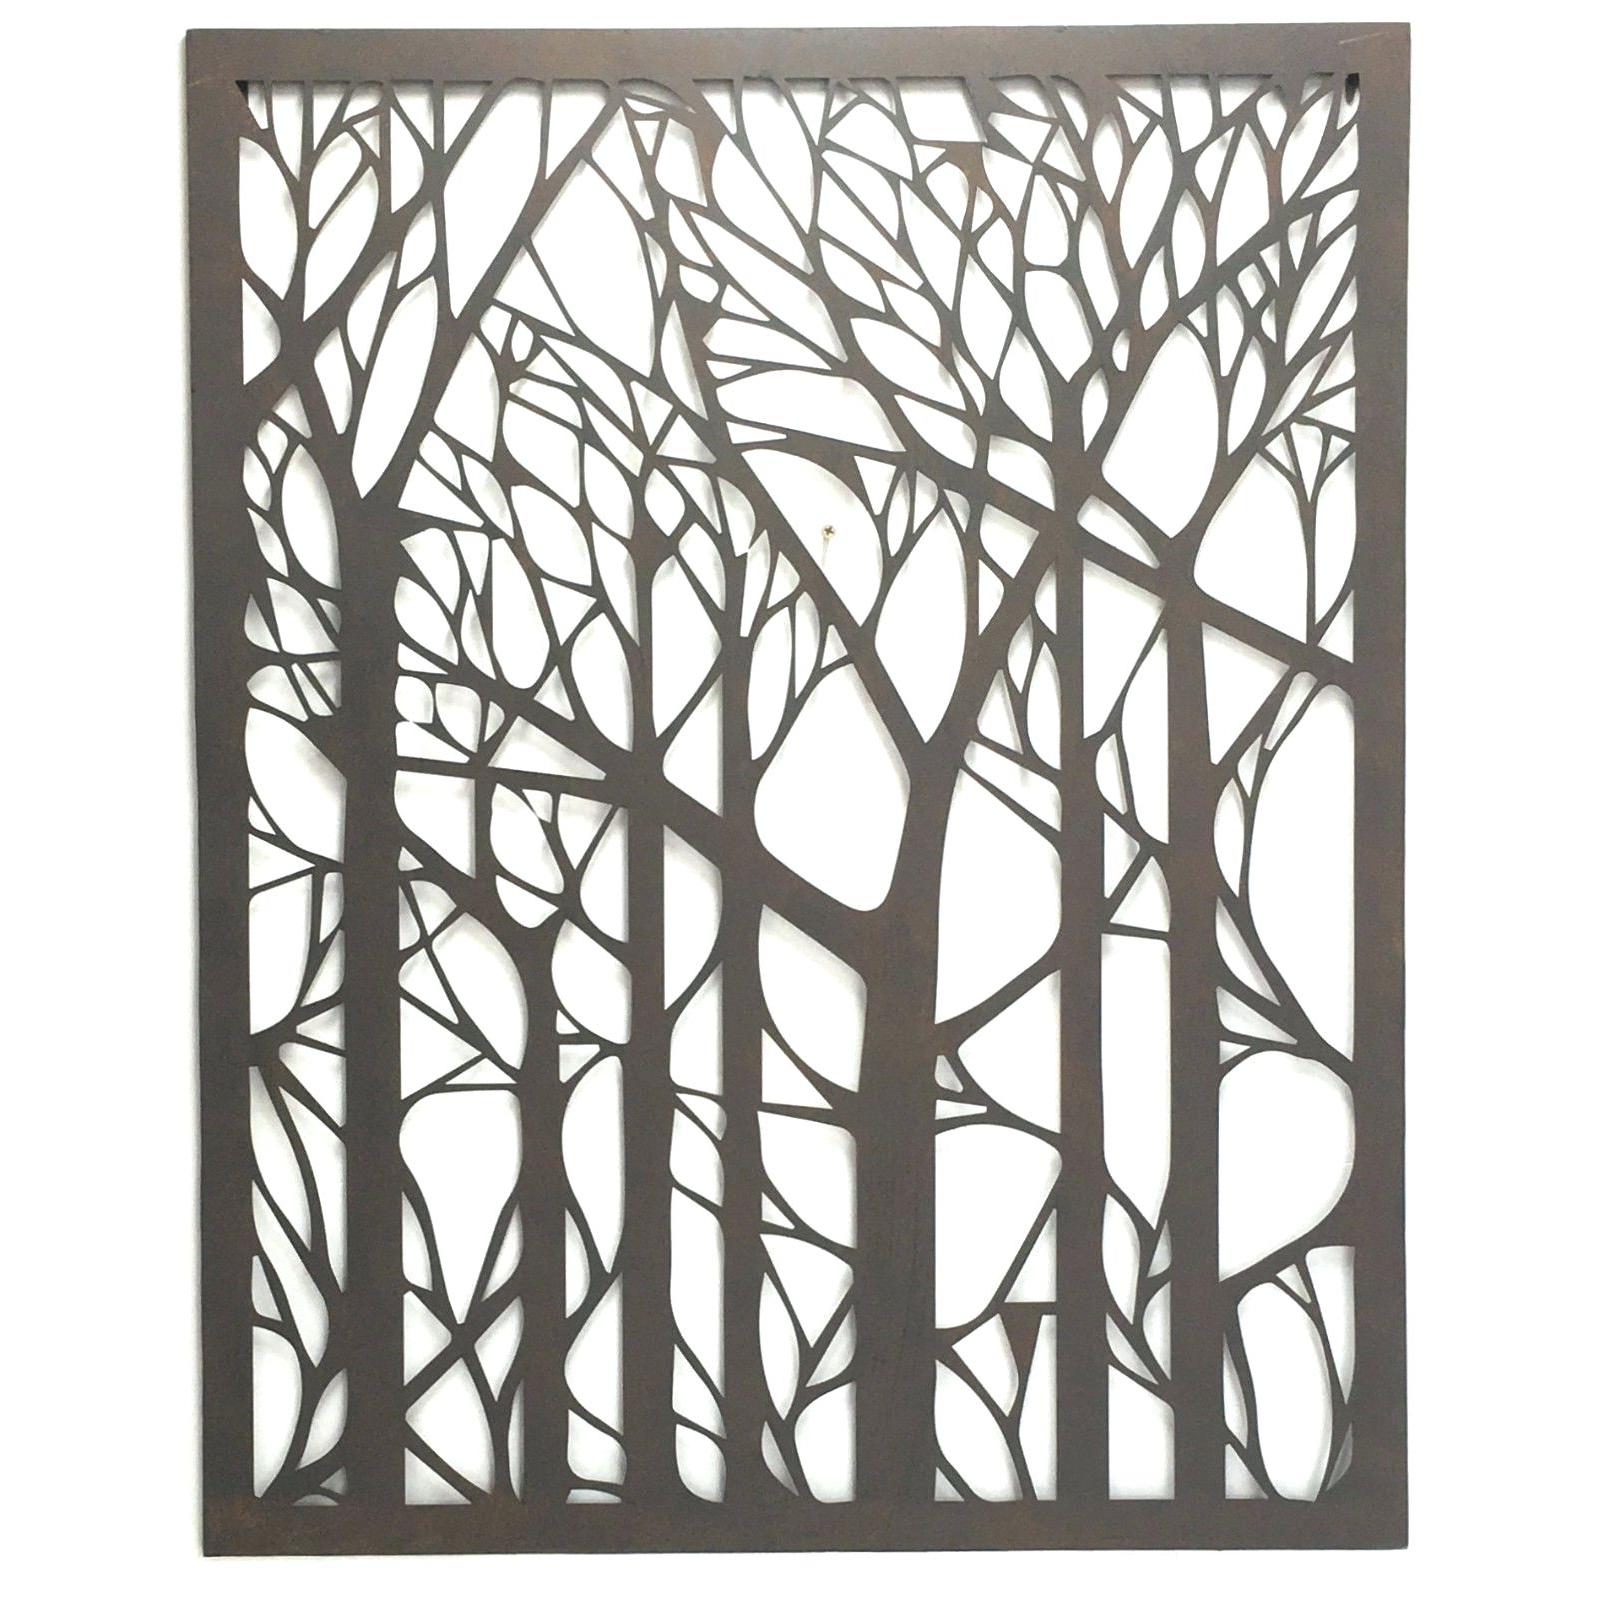 Recent Decorative Outdoor Metal Wall Art Regarding Wall Arts ~ 1000 Ideas About Outdoor Metal Wall Art On Pinterest (View 15 of 15)